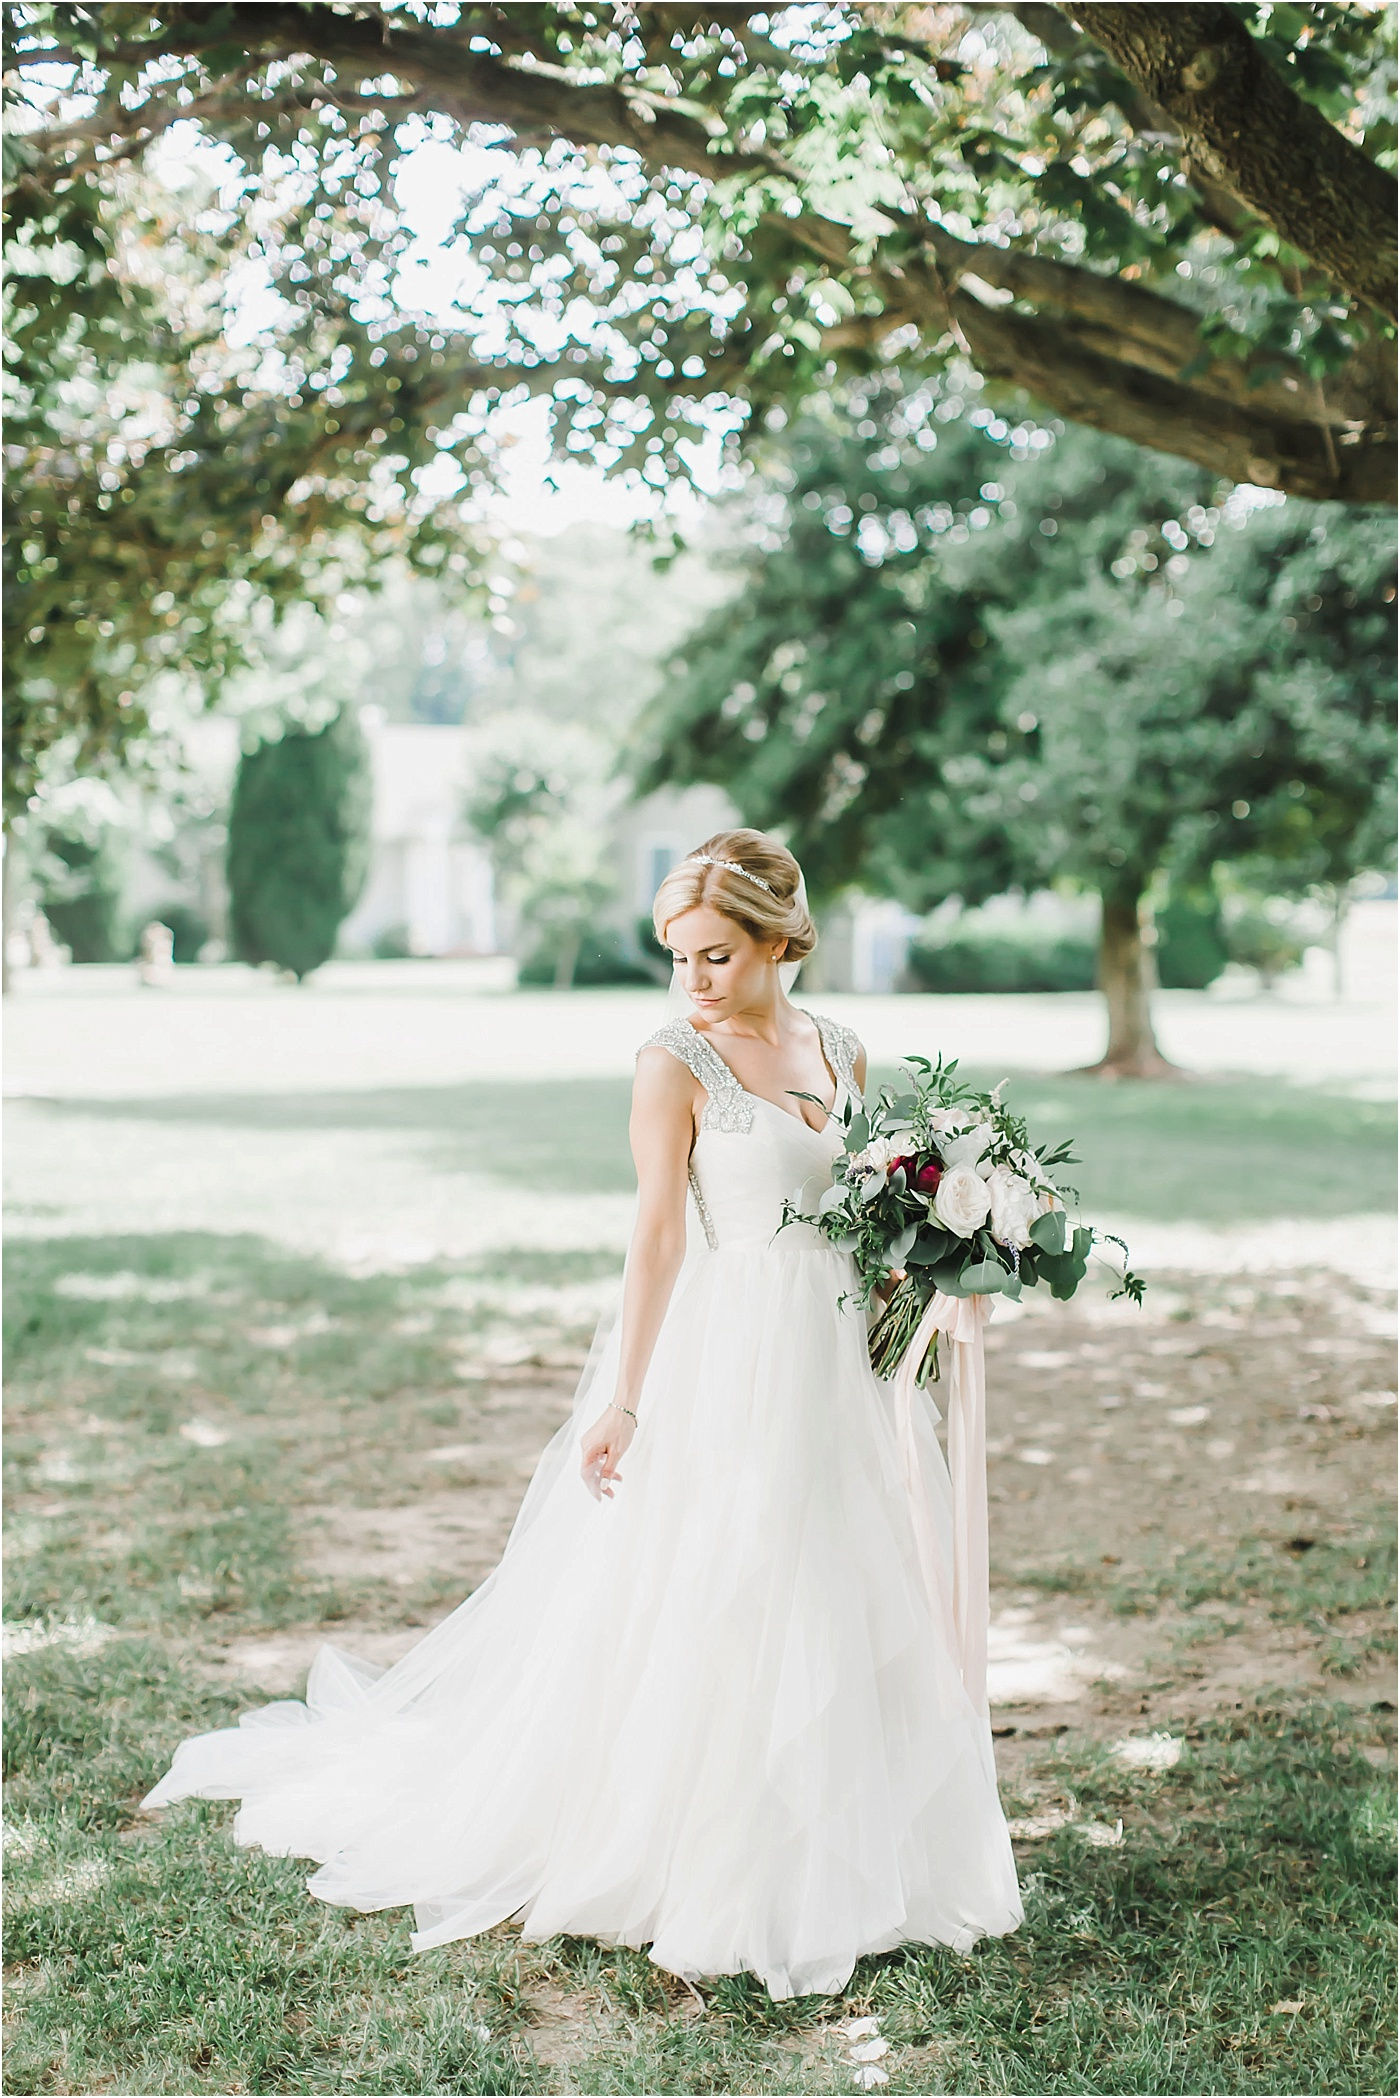 Beaded Hayley Paige Wedding Dress for an Outdoor Eastern Shore of Maryland Wedding